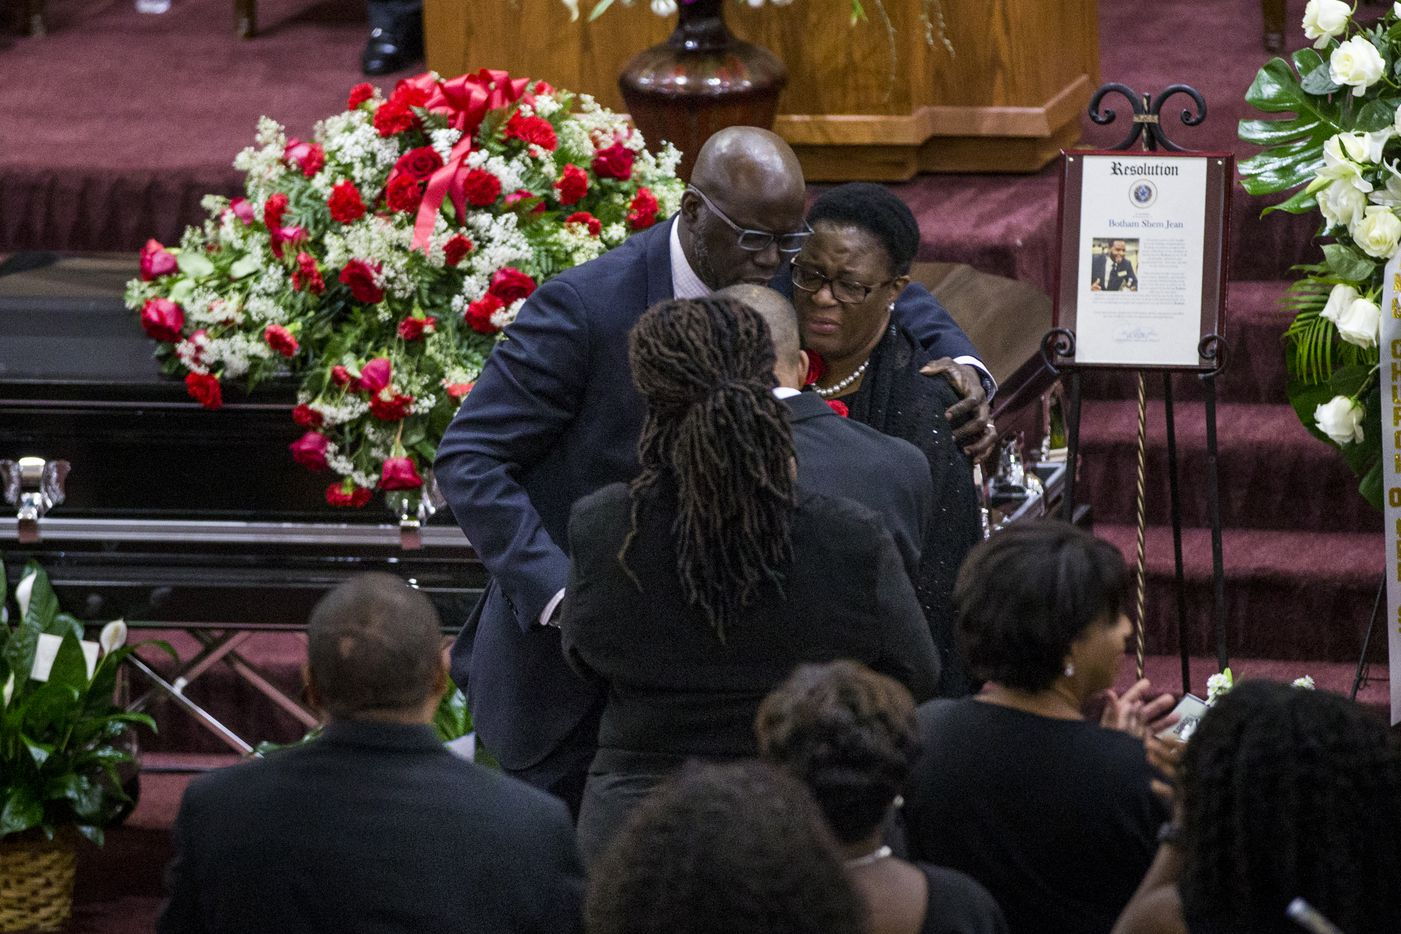 Dane Felicien embraces the Jean family after paying tribute to their son during the funeral service for Botham Shem Jean at the Greenville Avenue Church of Christ on Thursday, September 13, 2018 in Richardson, Texas. He was shot and killed by a Dallas police officer in his apartment last week in Dallas. (Shaban Athuman/ The Dallas Morning News)